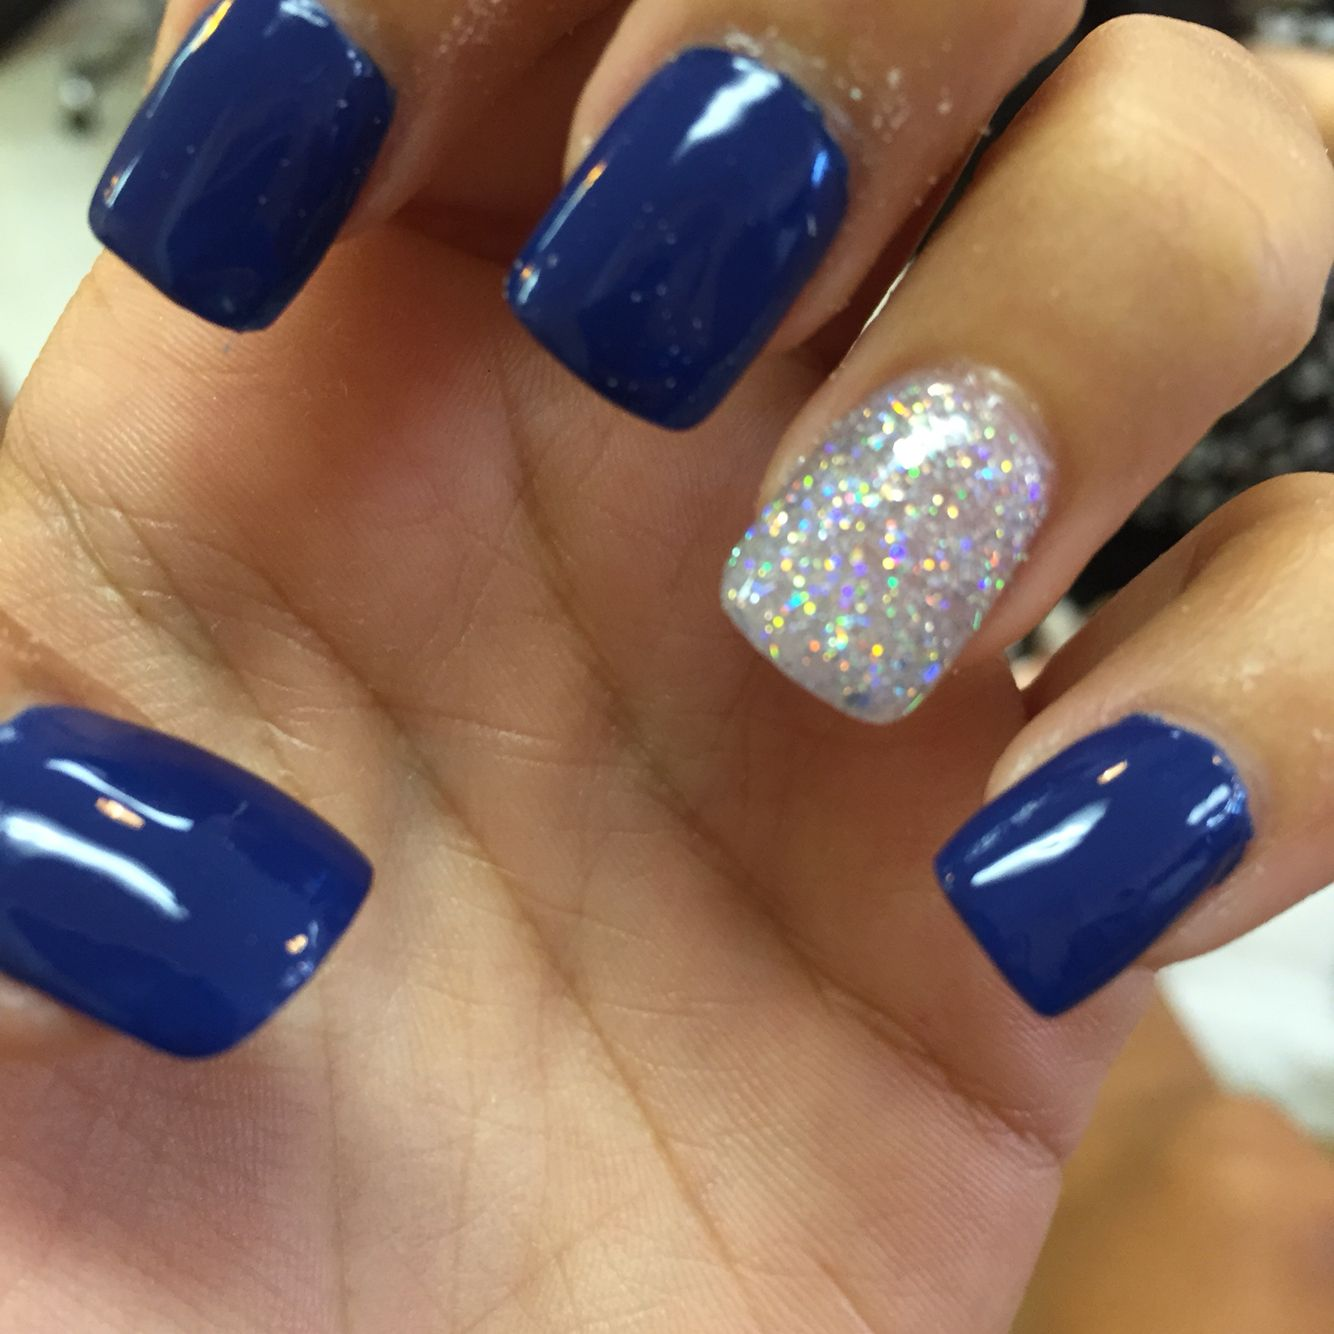 Royal Blue Acrylic Nails With Silver Rounded Acrylic Nails Winter Nails Acrylic Blue Acrylic Nails